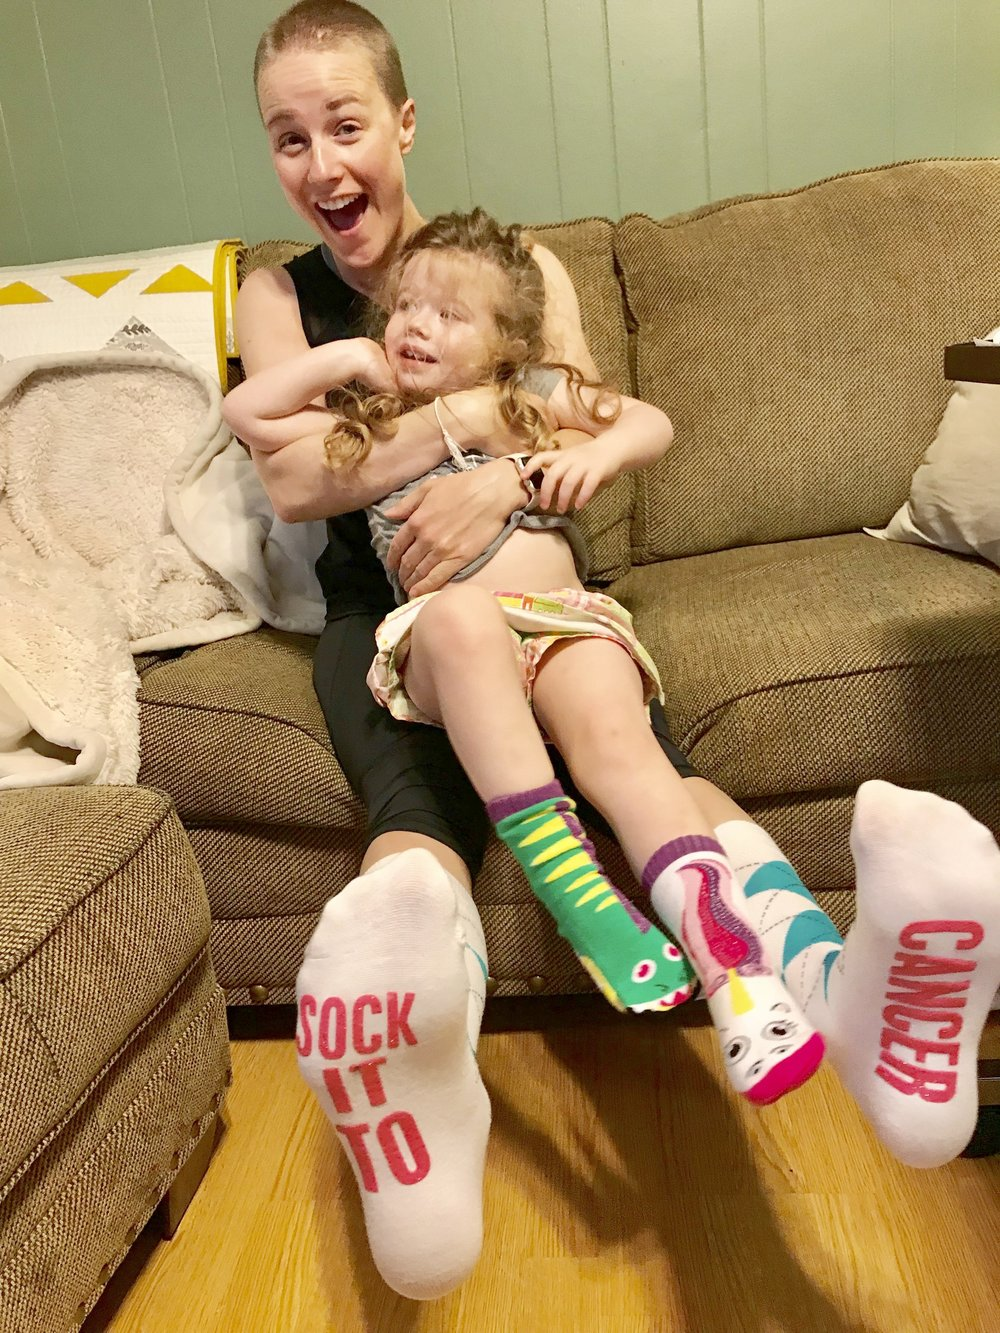 Elin and I received some new socks this week and had fun trying them on!